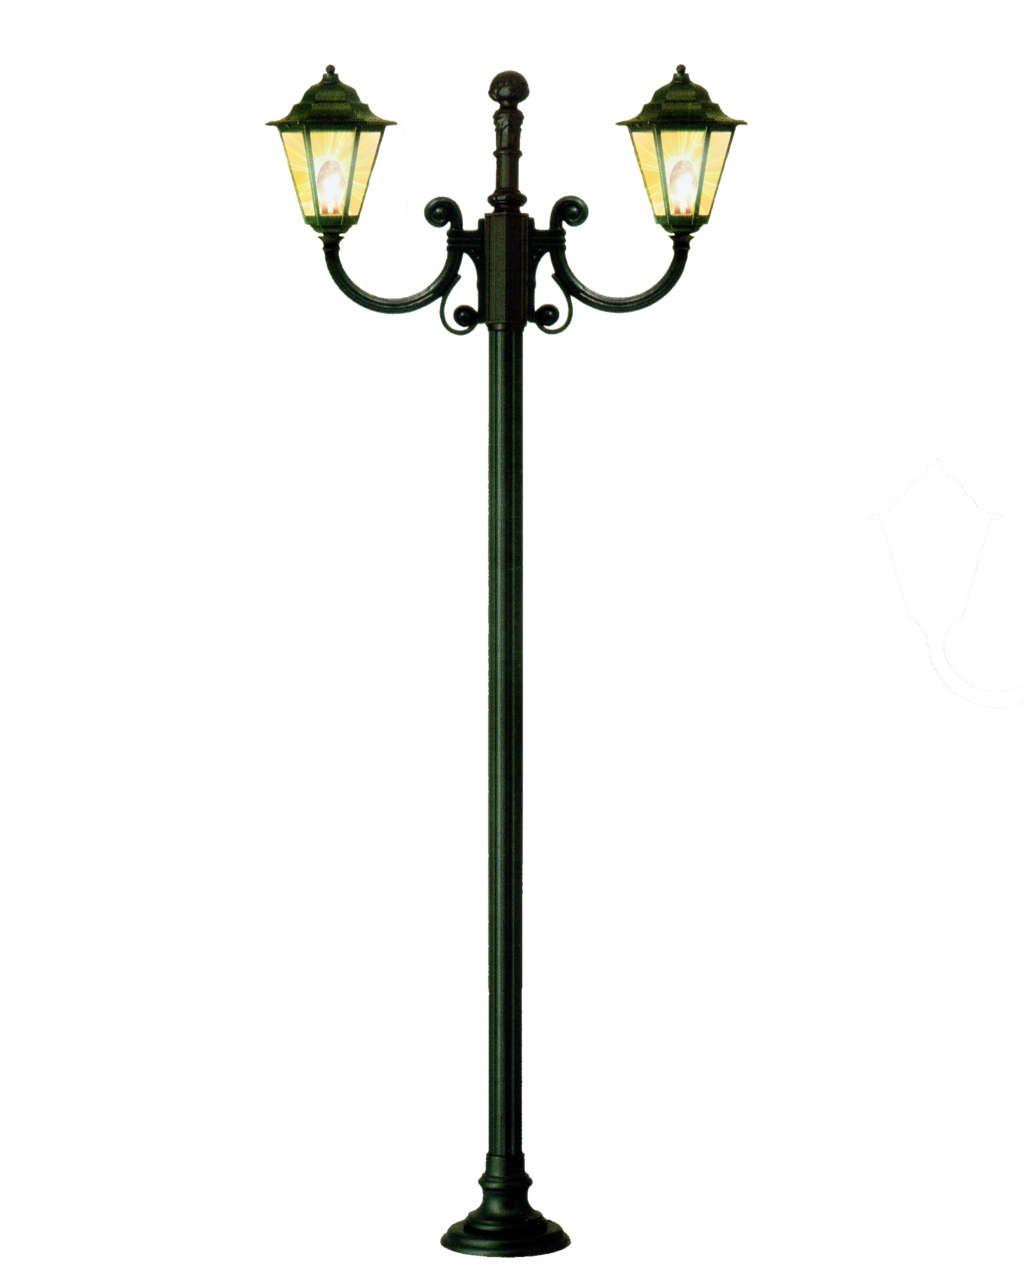 Streetlight clipart PNGMart Images PNG Street Free